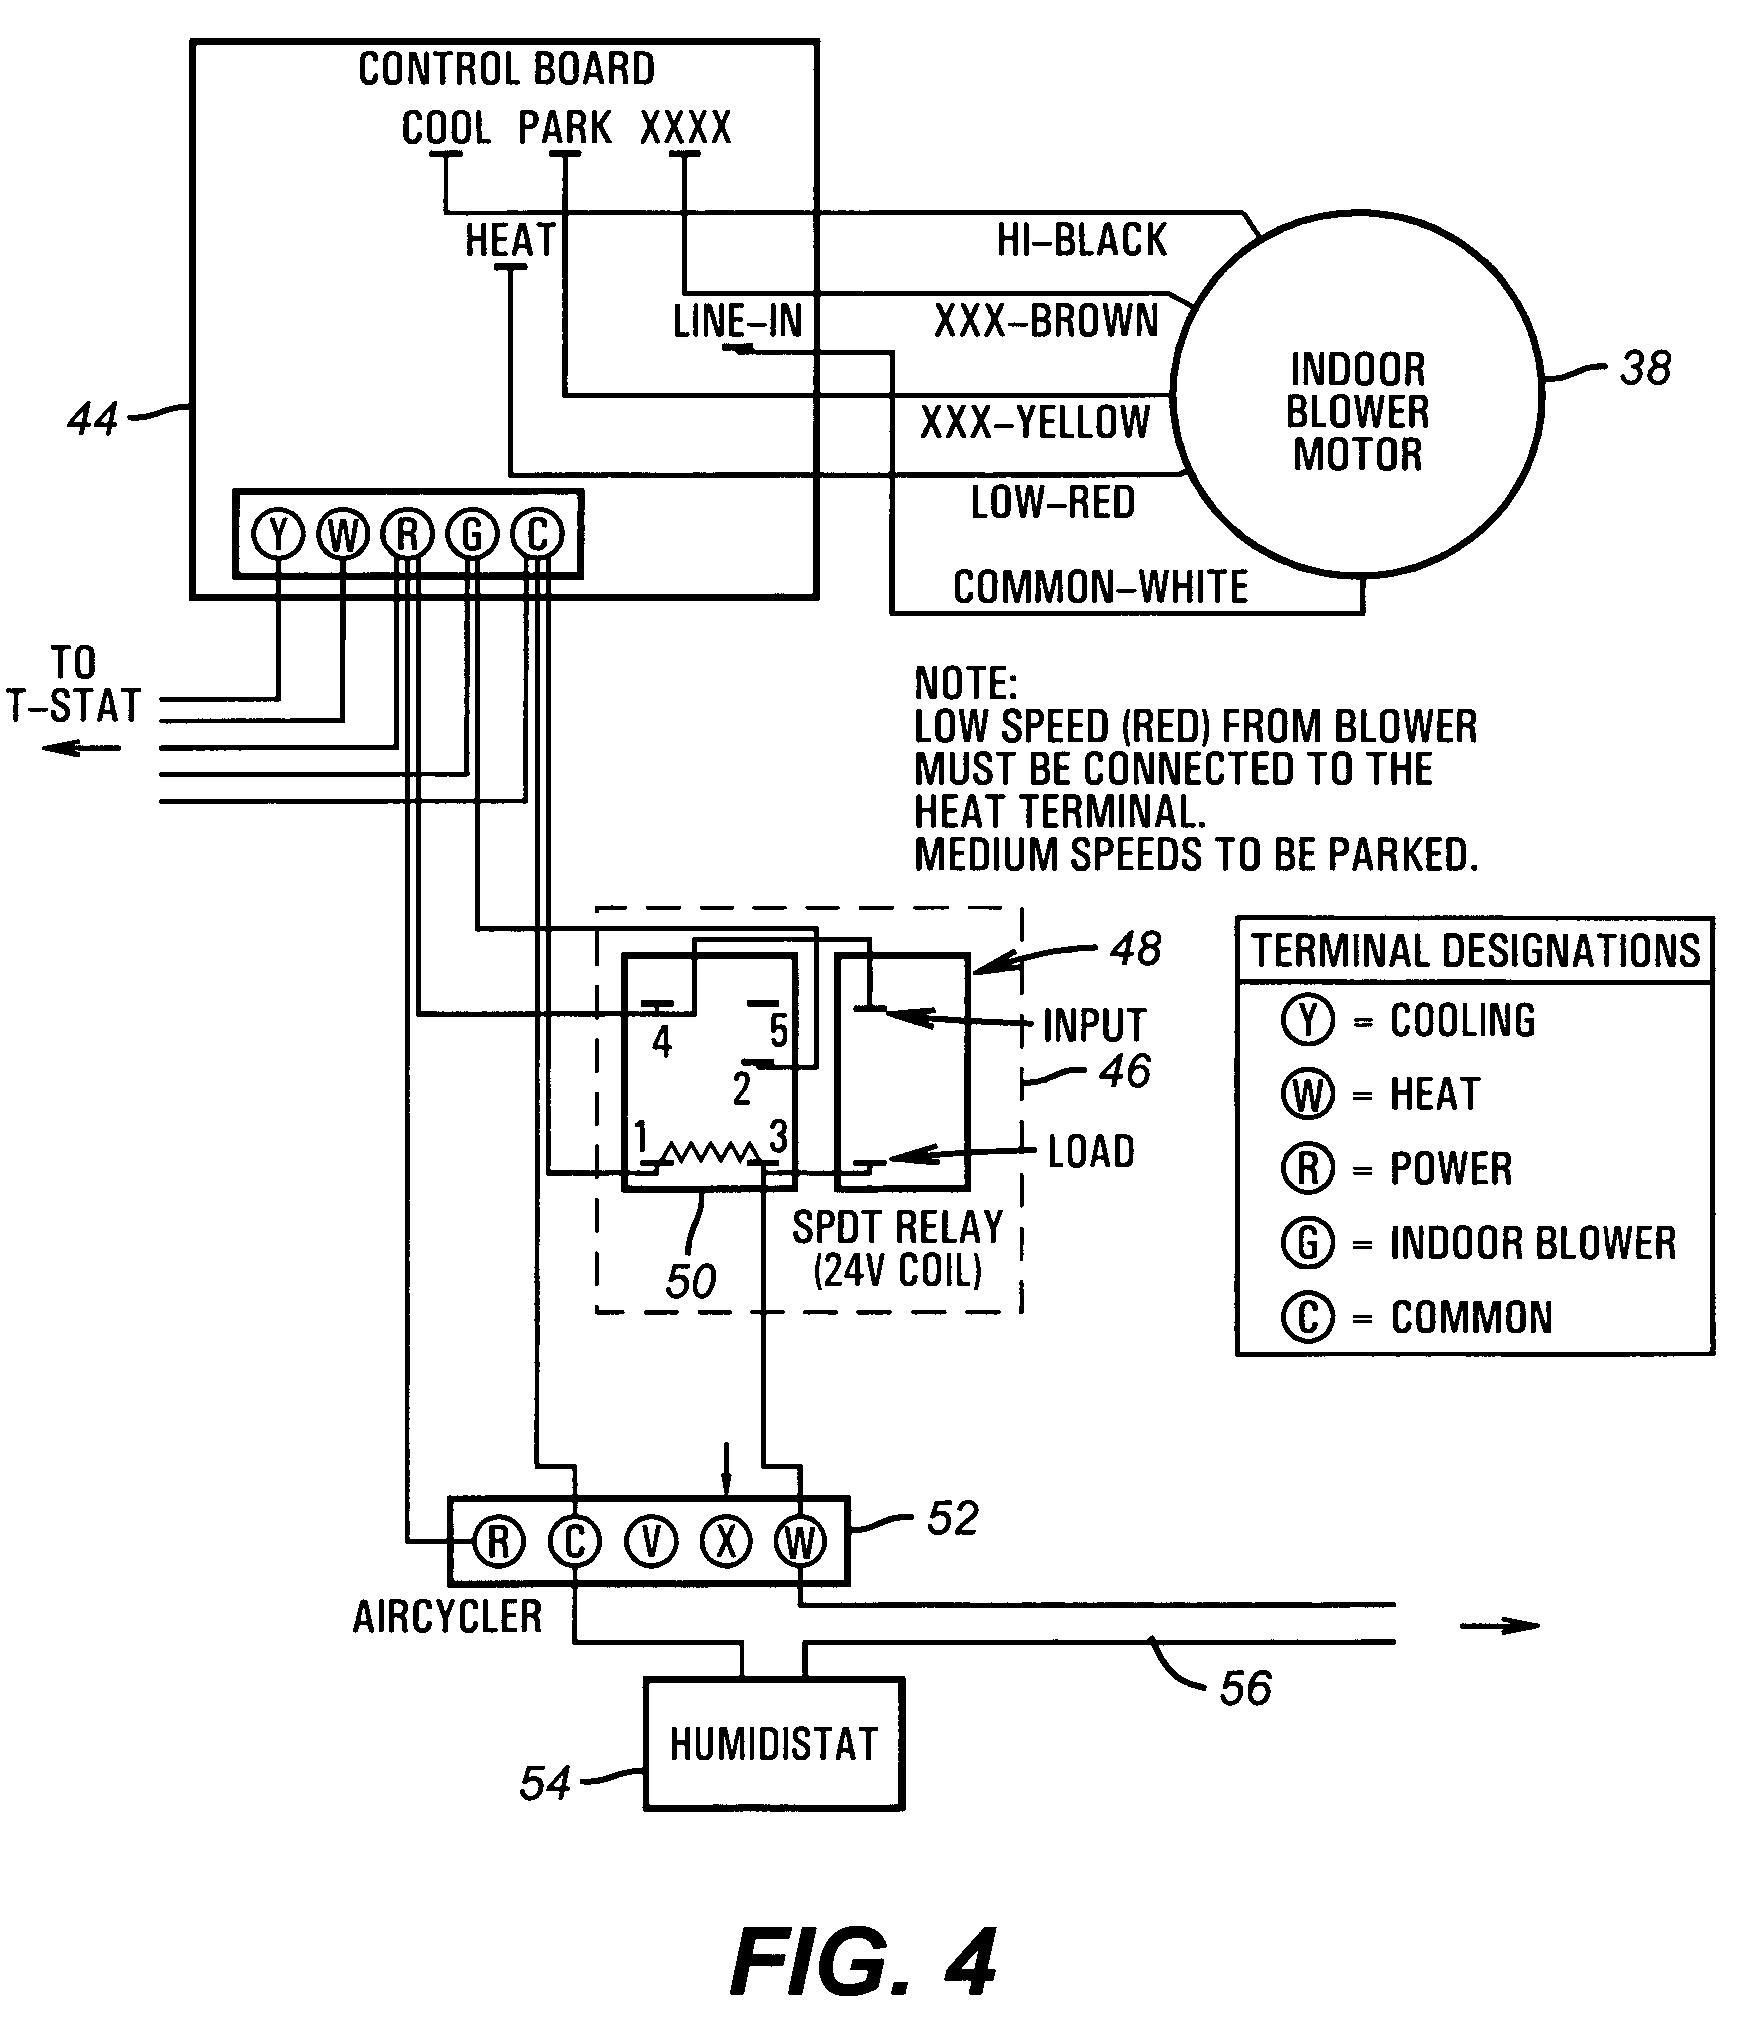 carrier economizer wiring diagram carrier fan coil unit